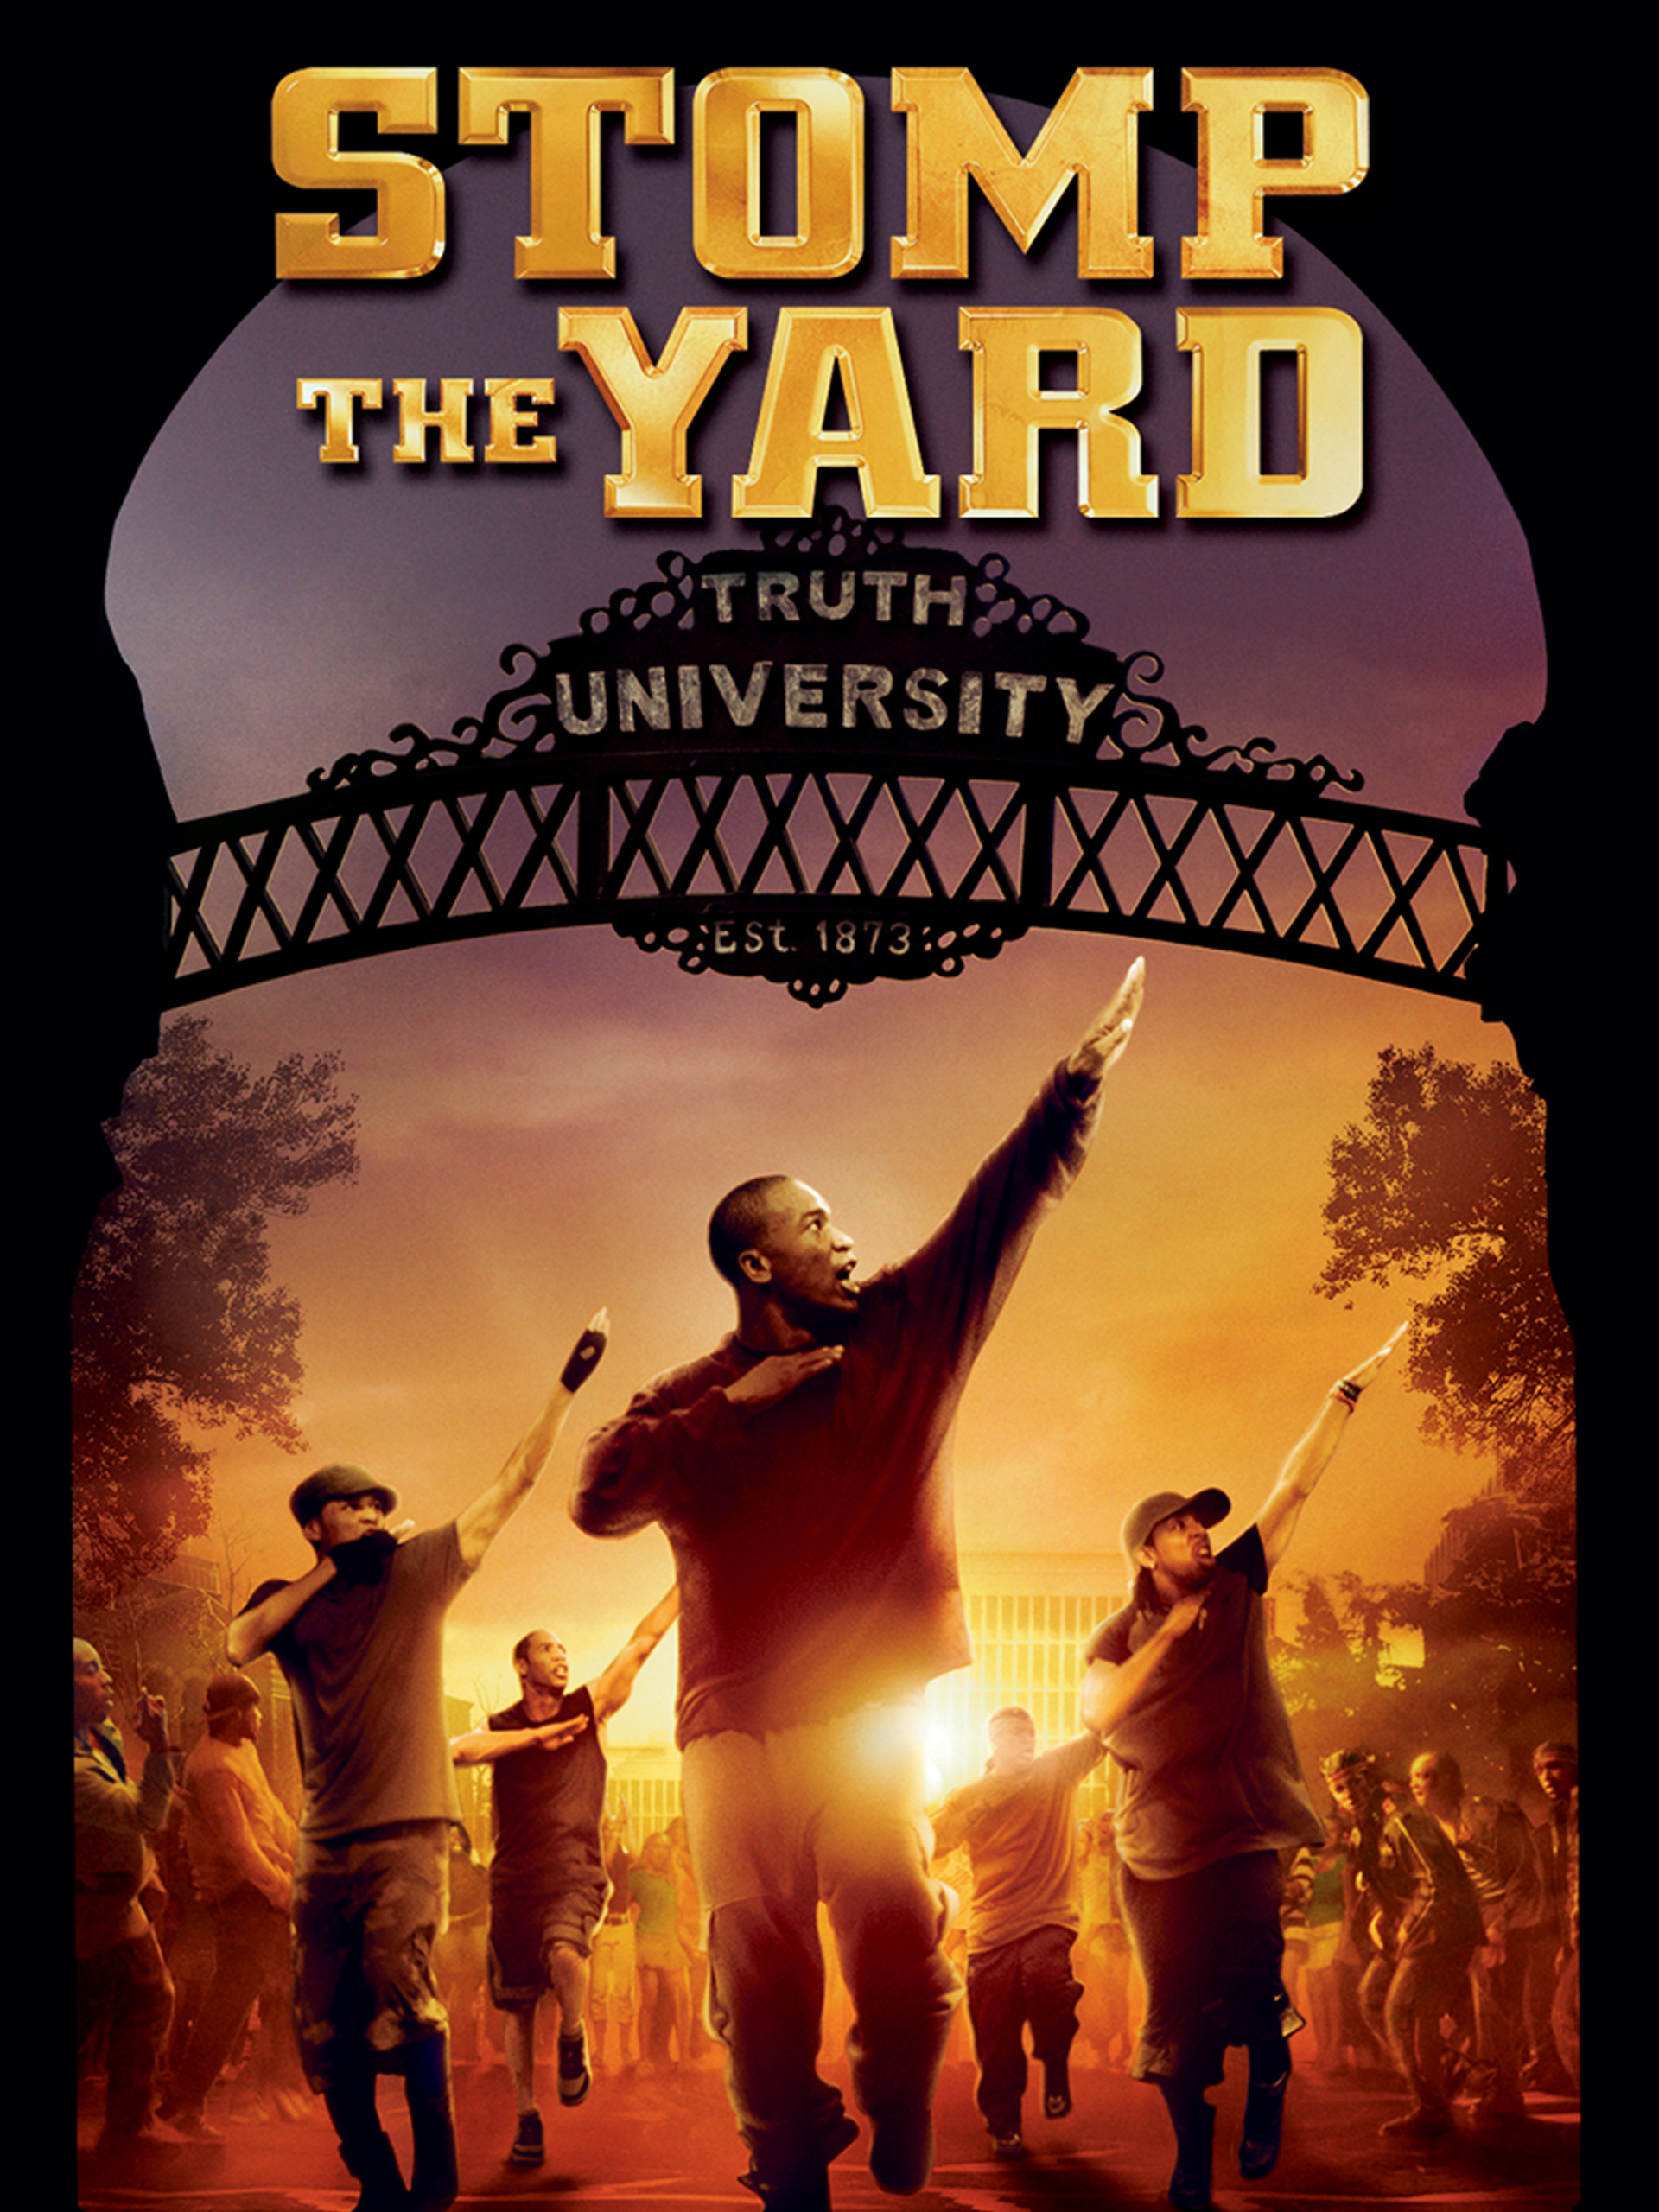 Prime Video Stomp The Yard